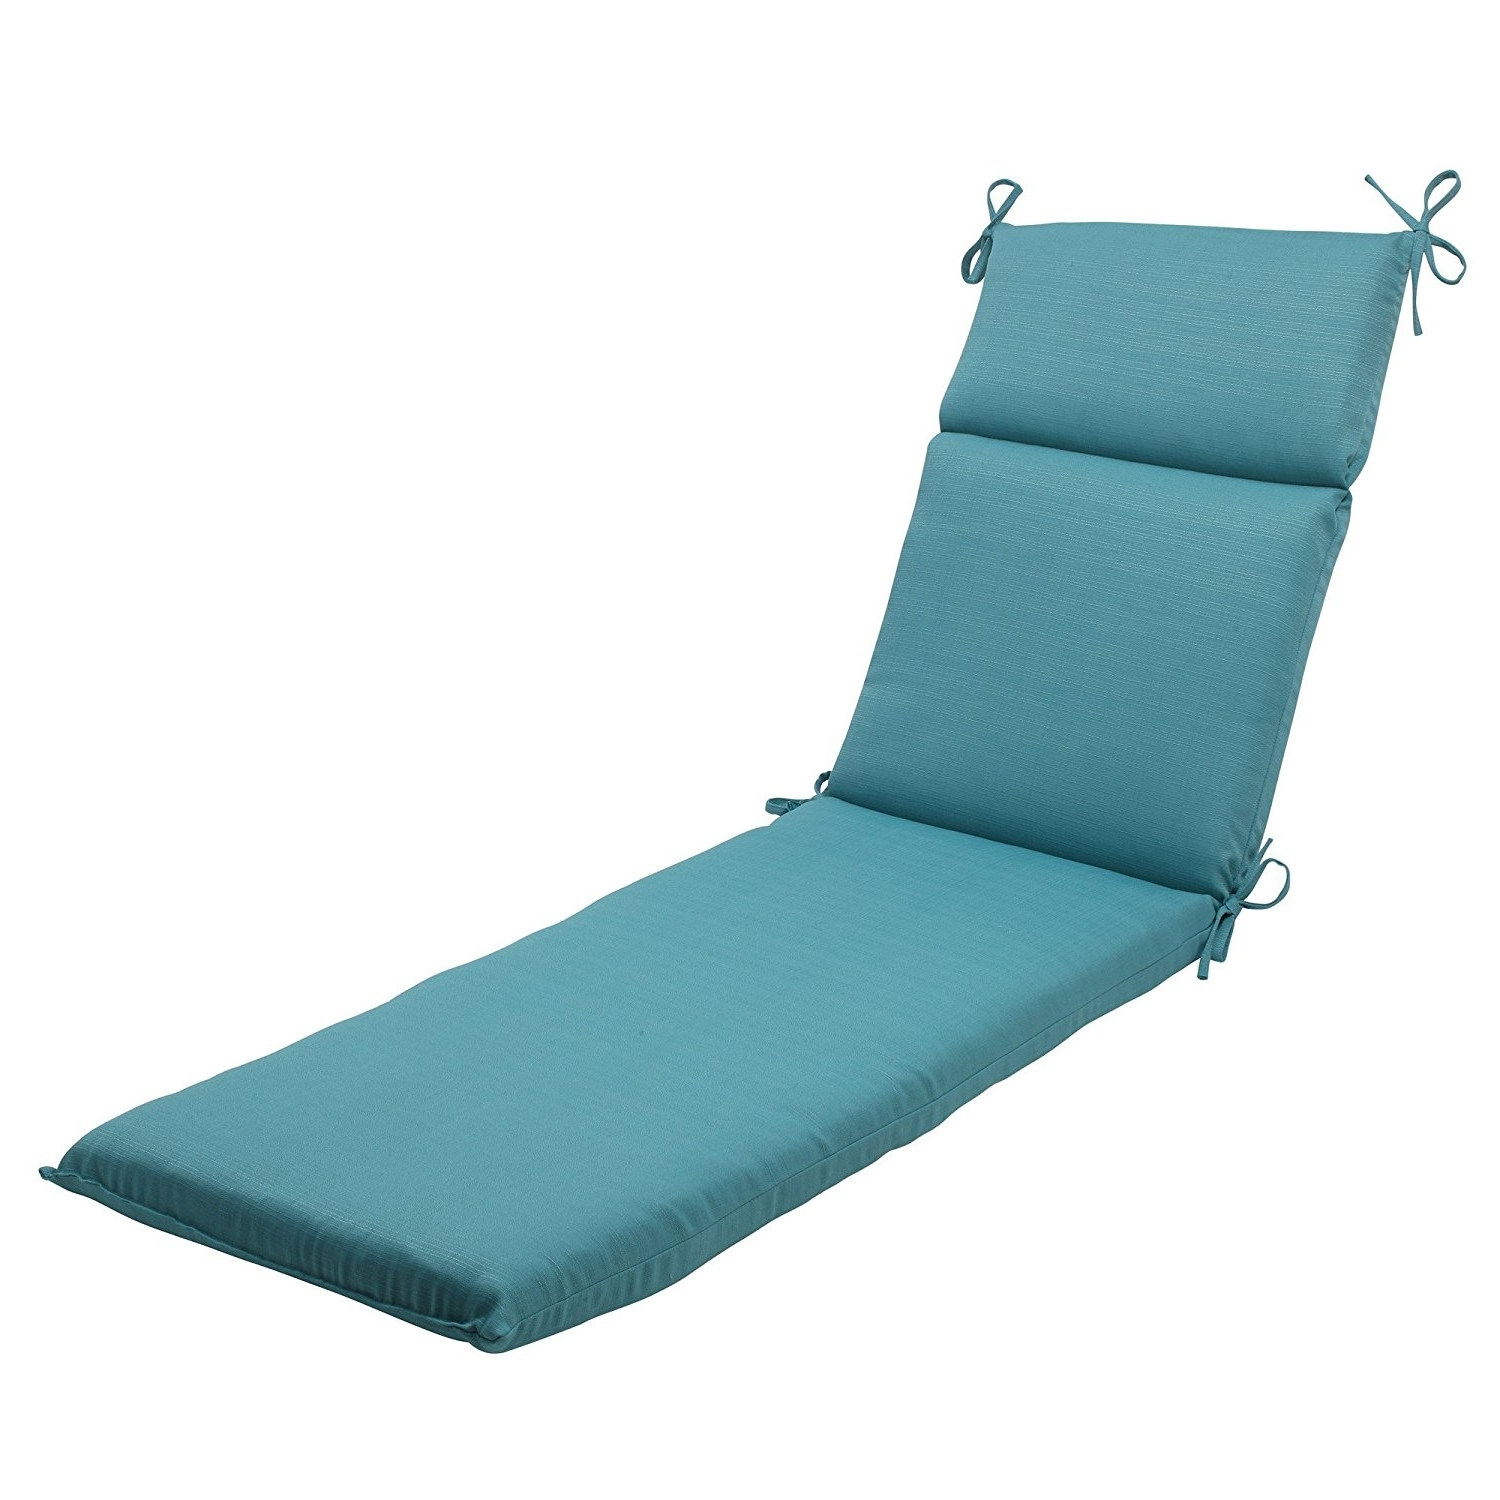 Preferred Outdoor Chaise Lounge Cushions In Amazon: Pillow Perfect Indoor/outdoor Forsyth Chaise Lounge (View 12 of 15)